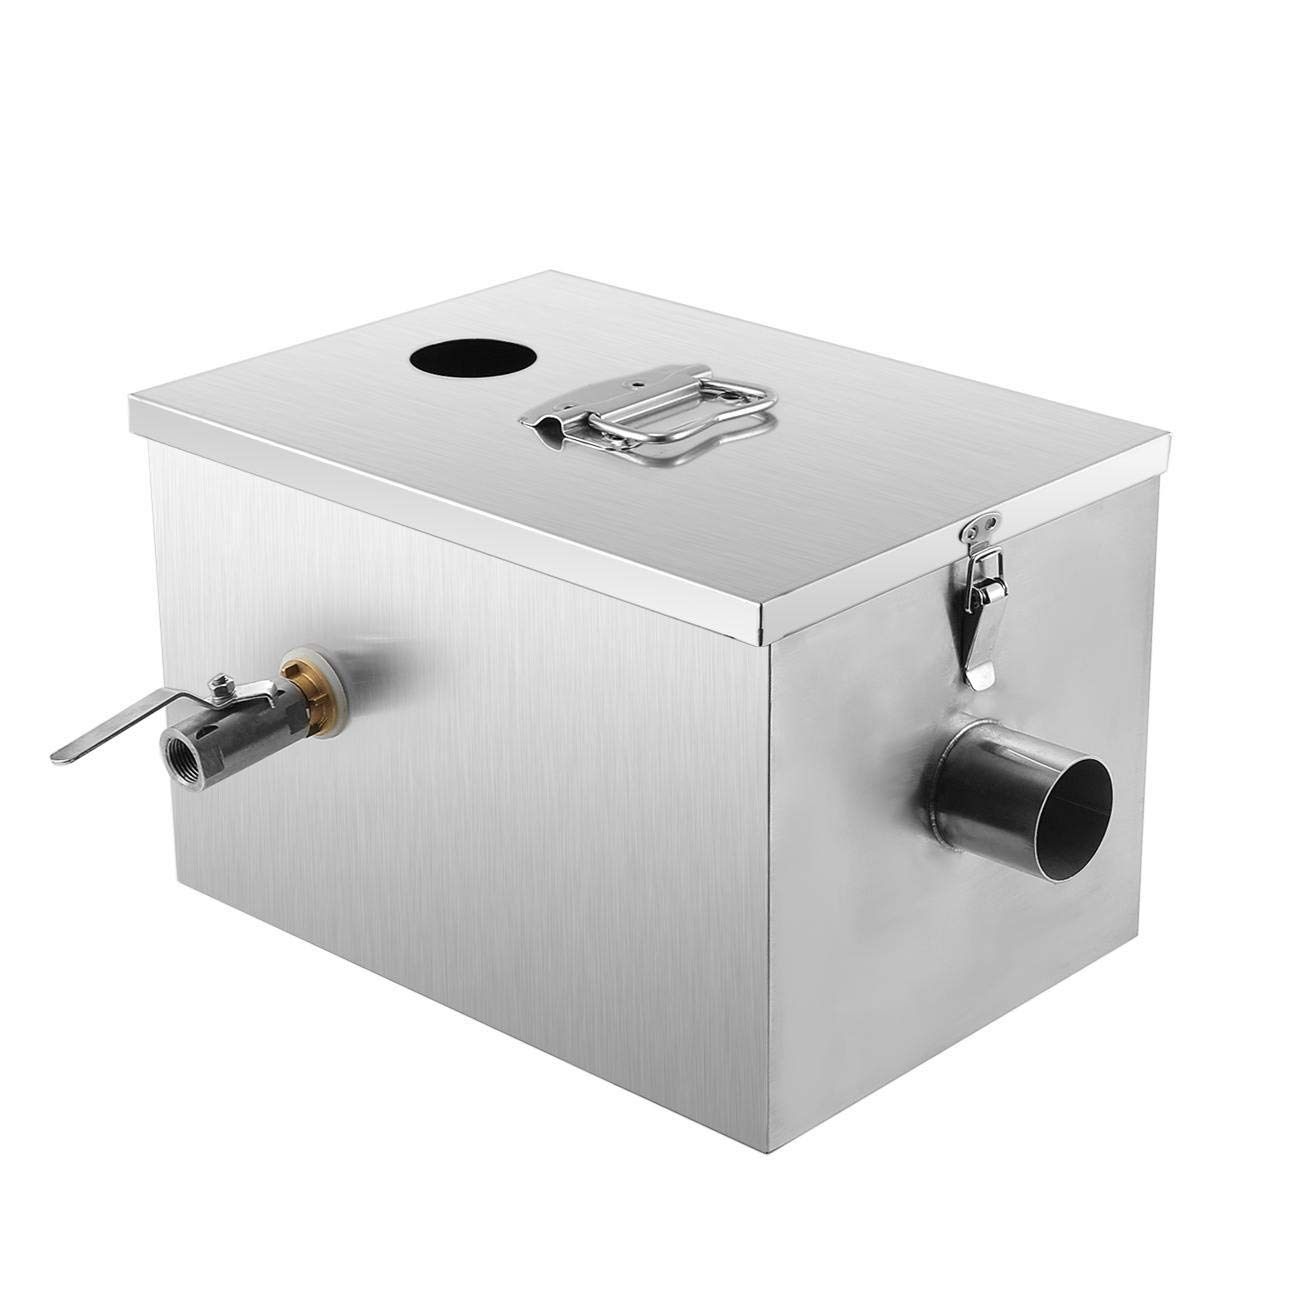 BEAMNOVA Commercial Grease Trap 8lbs 5GPM Gallons Per Minute Stainless Steel Interceptor for Restaurant Kitchen